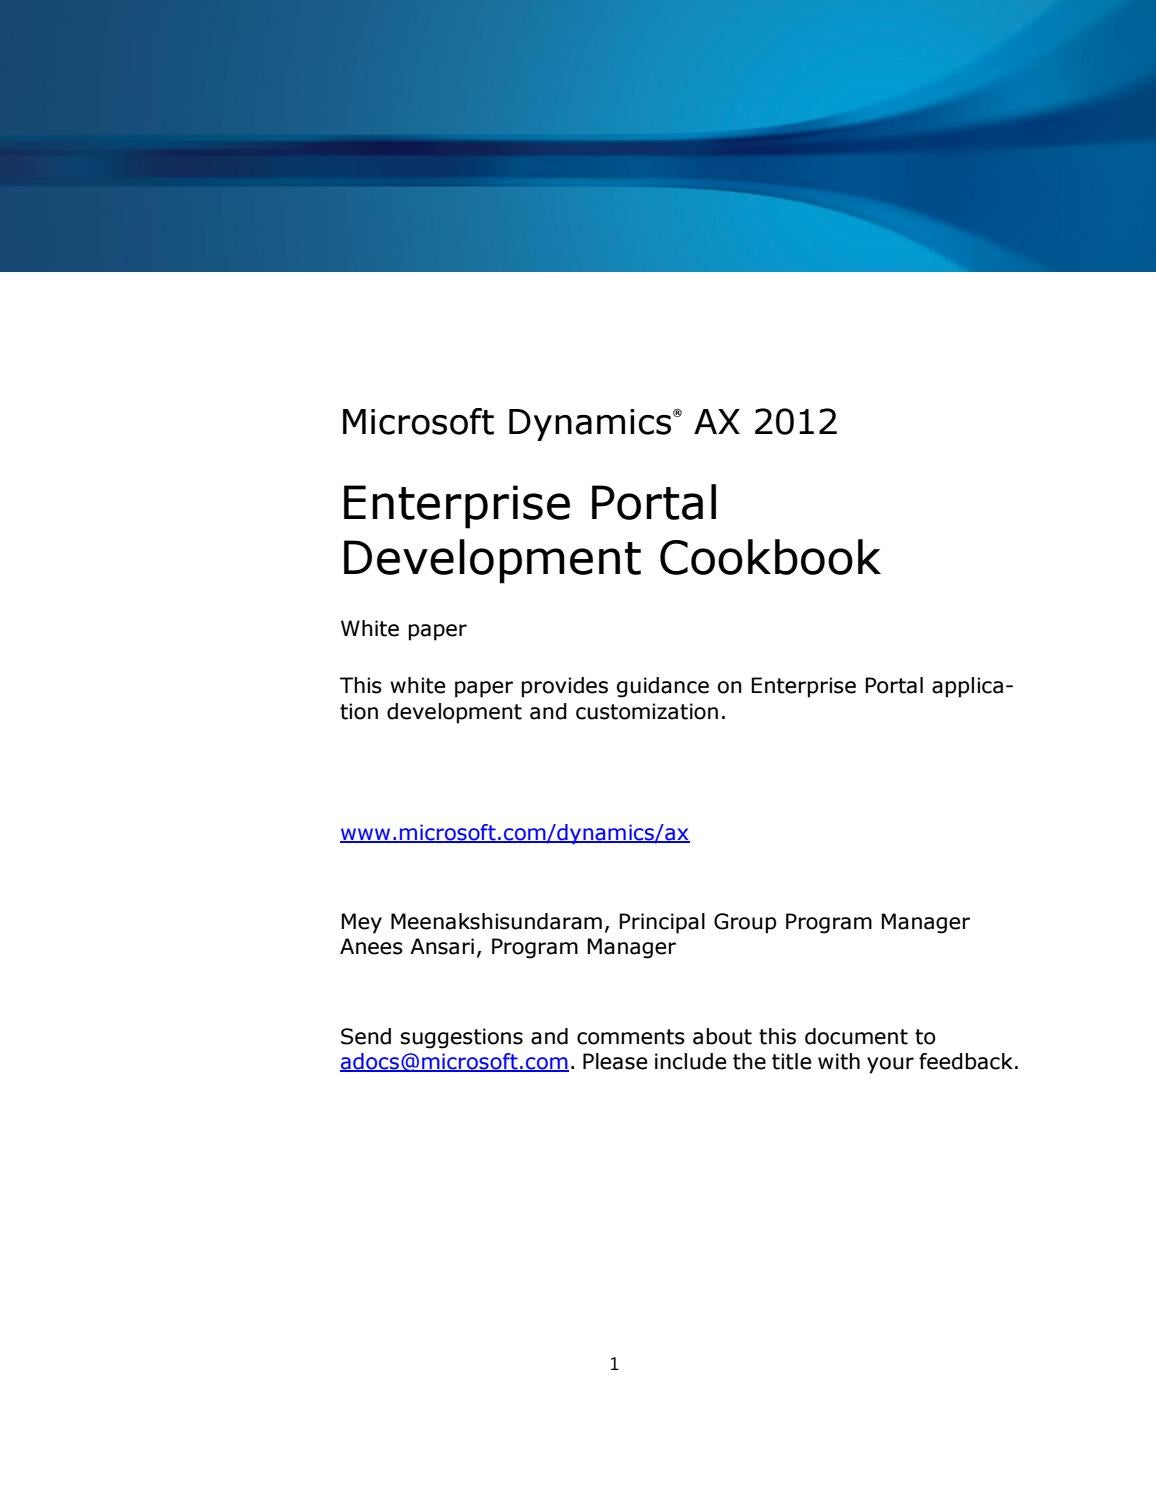 Microsoft Dynamics AX 2012 - Enterprise portal development